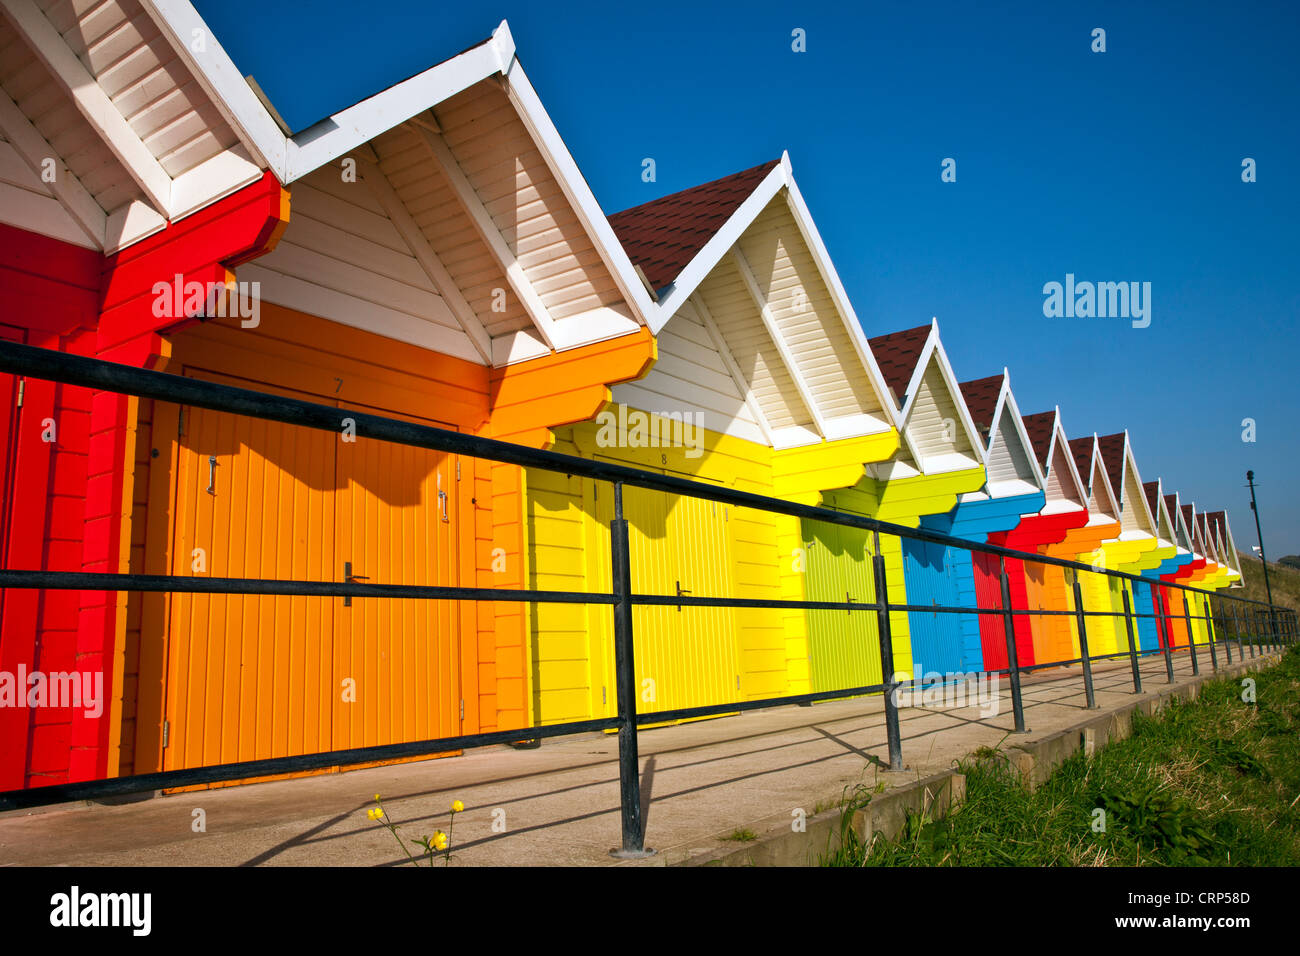 Colourful beach huts in North Bay, Scarborough. - Stock Image